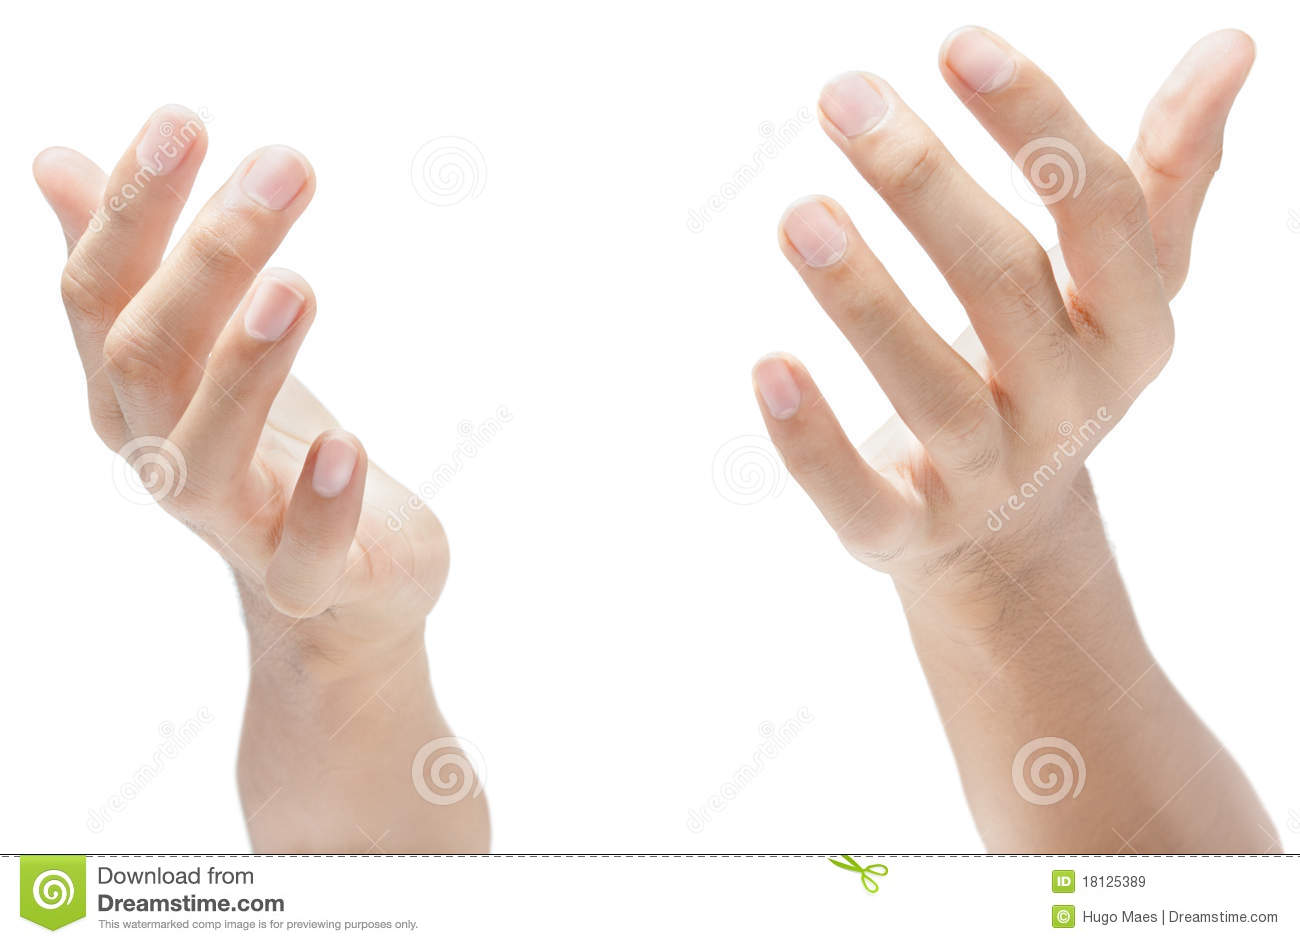 helping hands offering royalty free stock images image shaking hands clipart free 2 hands shaking clipart